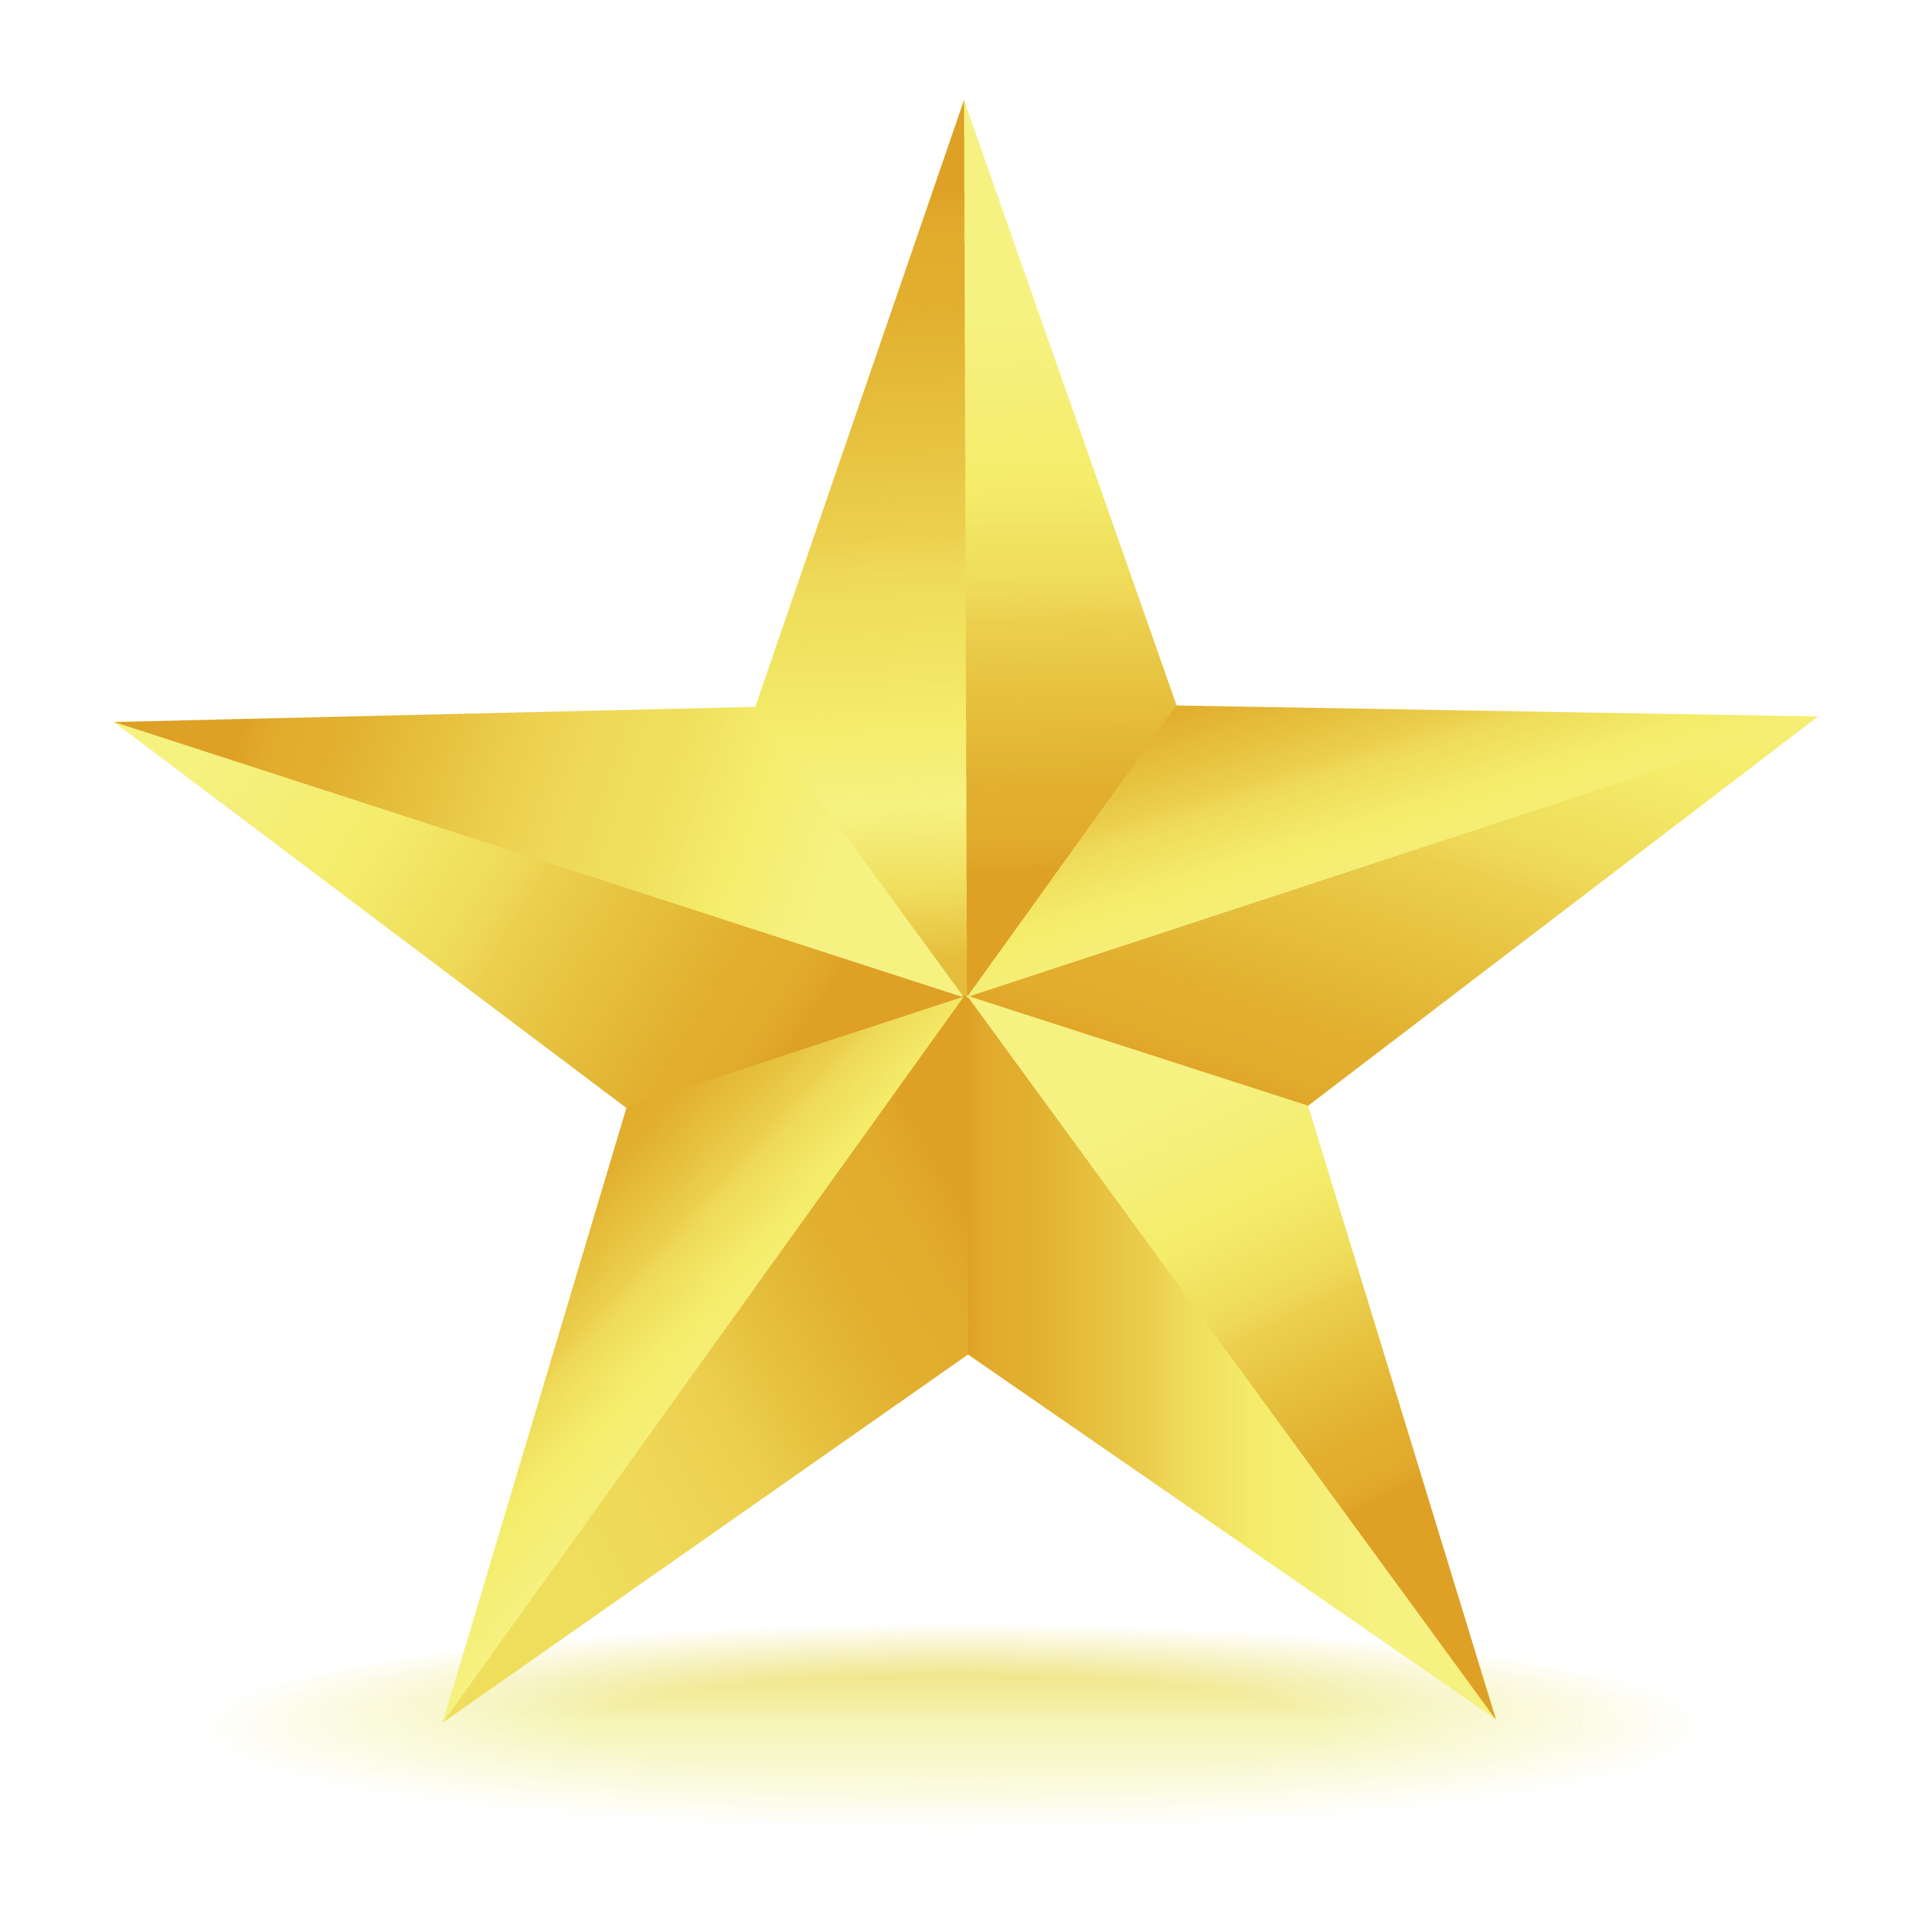 Gold Star Free Clipart #1 - Star Images Free Clip Art